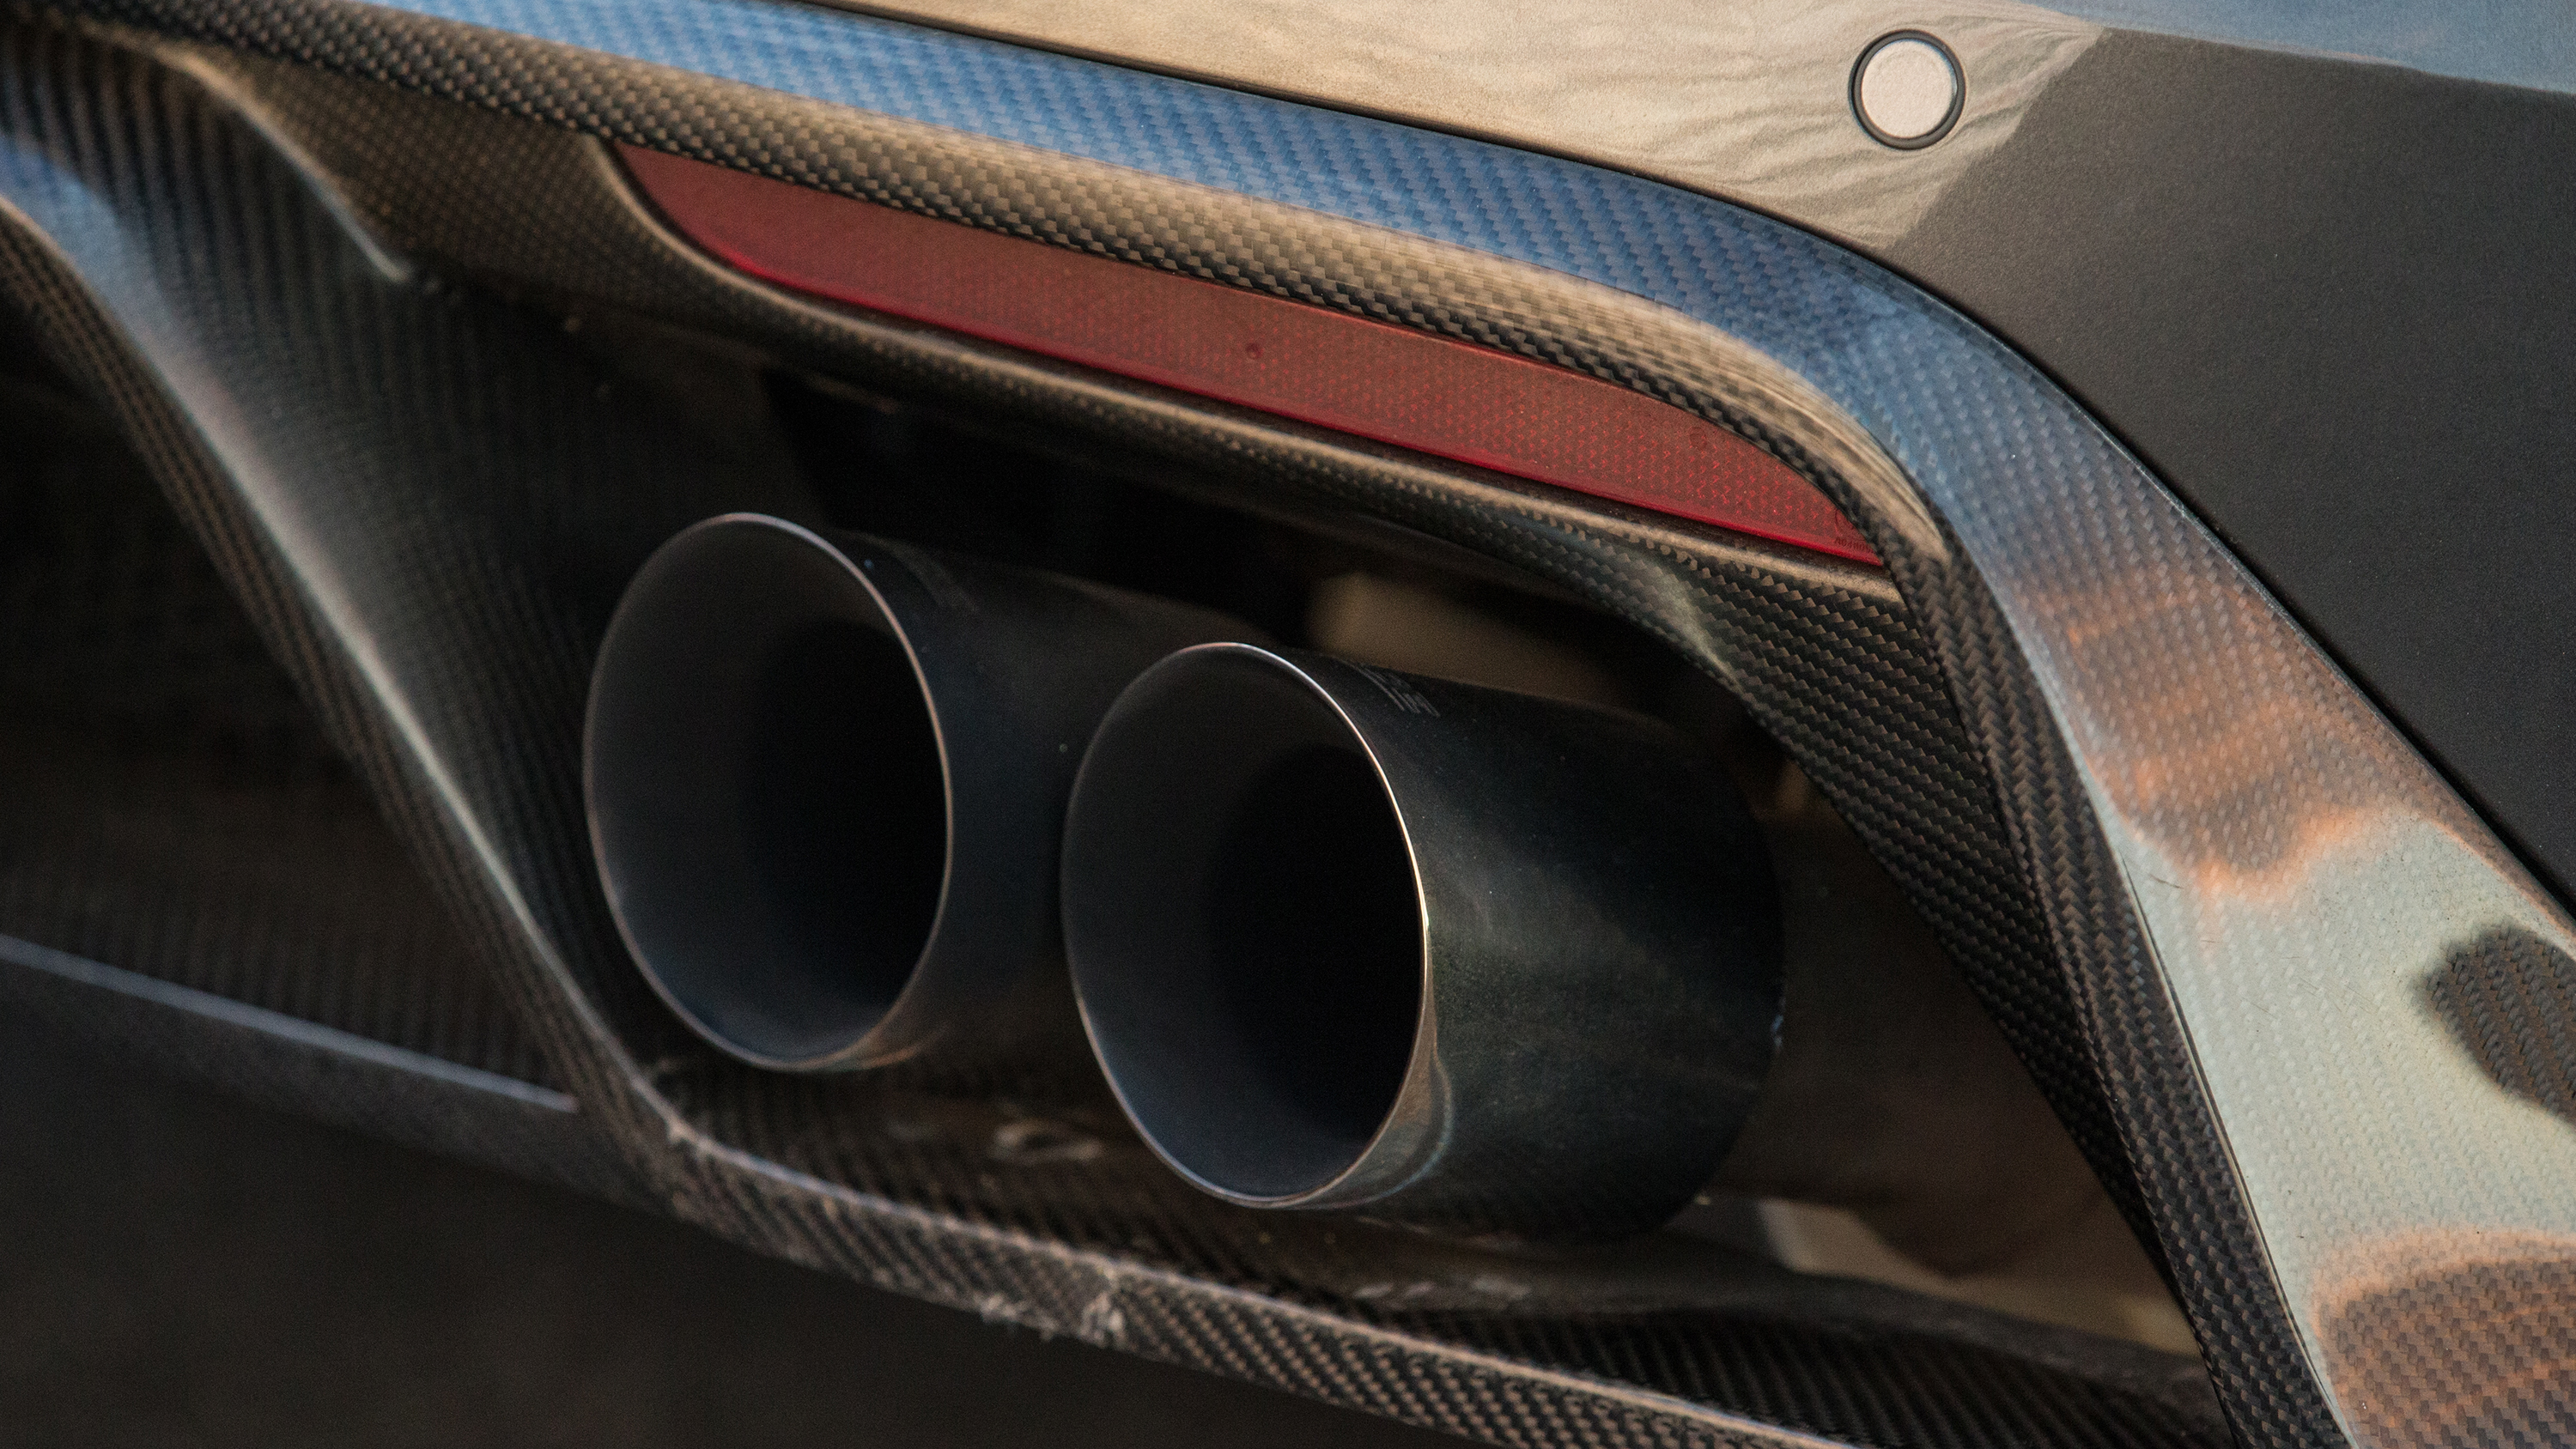 Ford Mustang CS800 exhaust